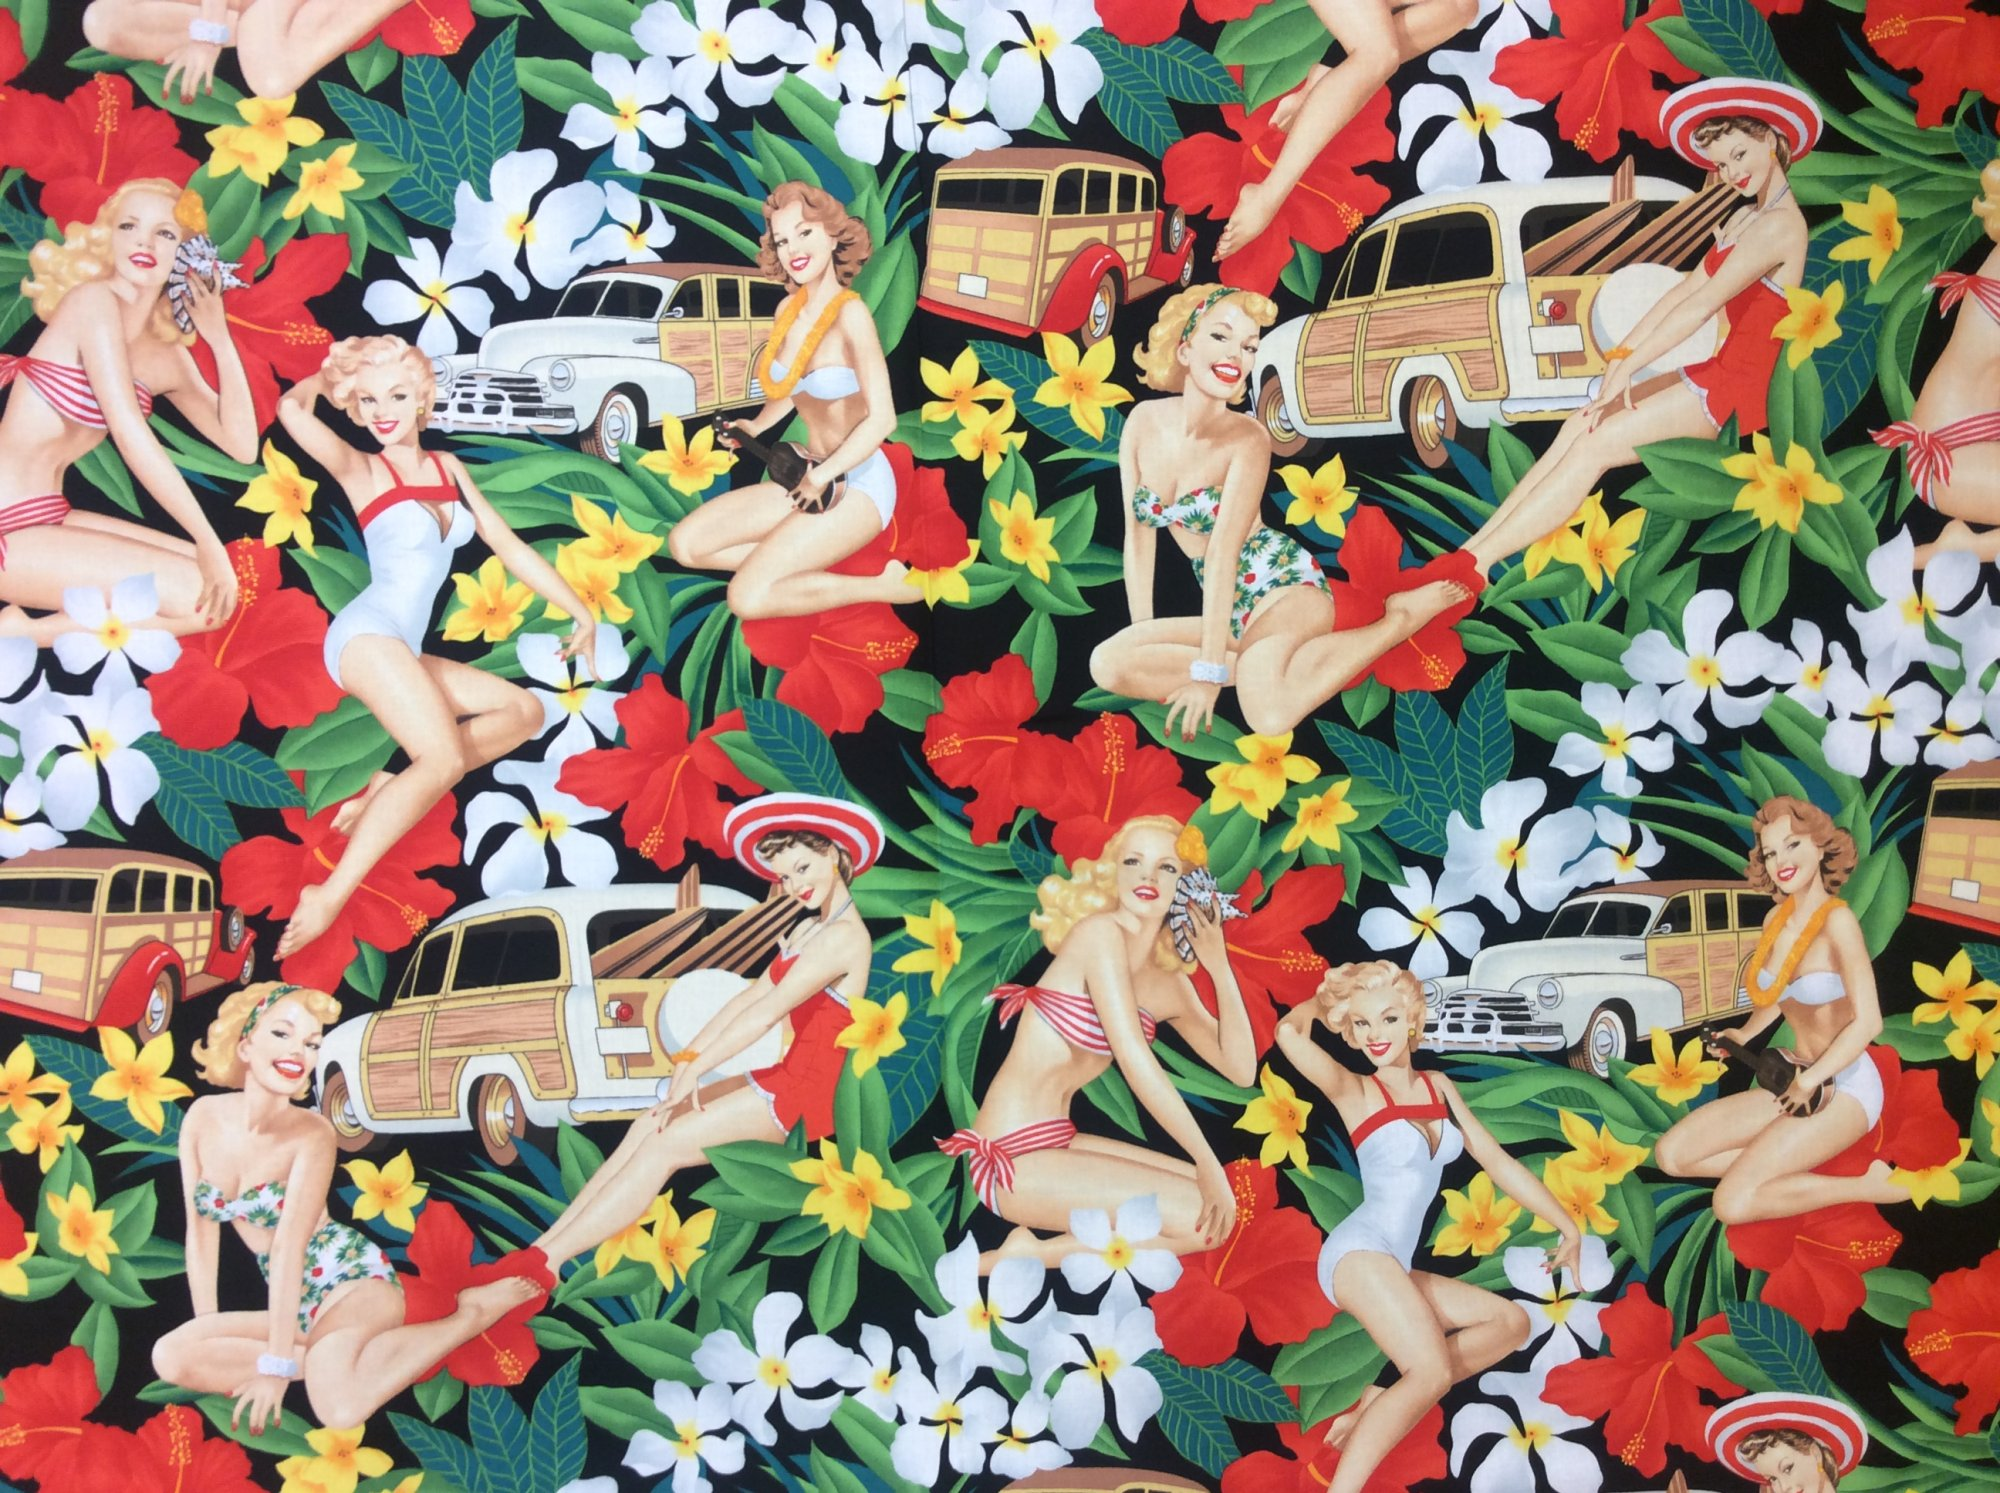 Sexy Pin Up Girls Aloha Girls Woody Wagon Retro Hawaii Hula Luau Tiki Bar Alexander Henry Cotton Quilt Fabric AH234